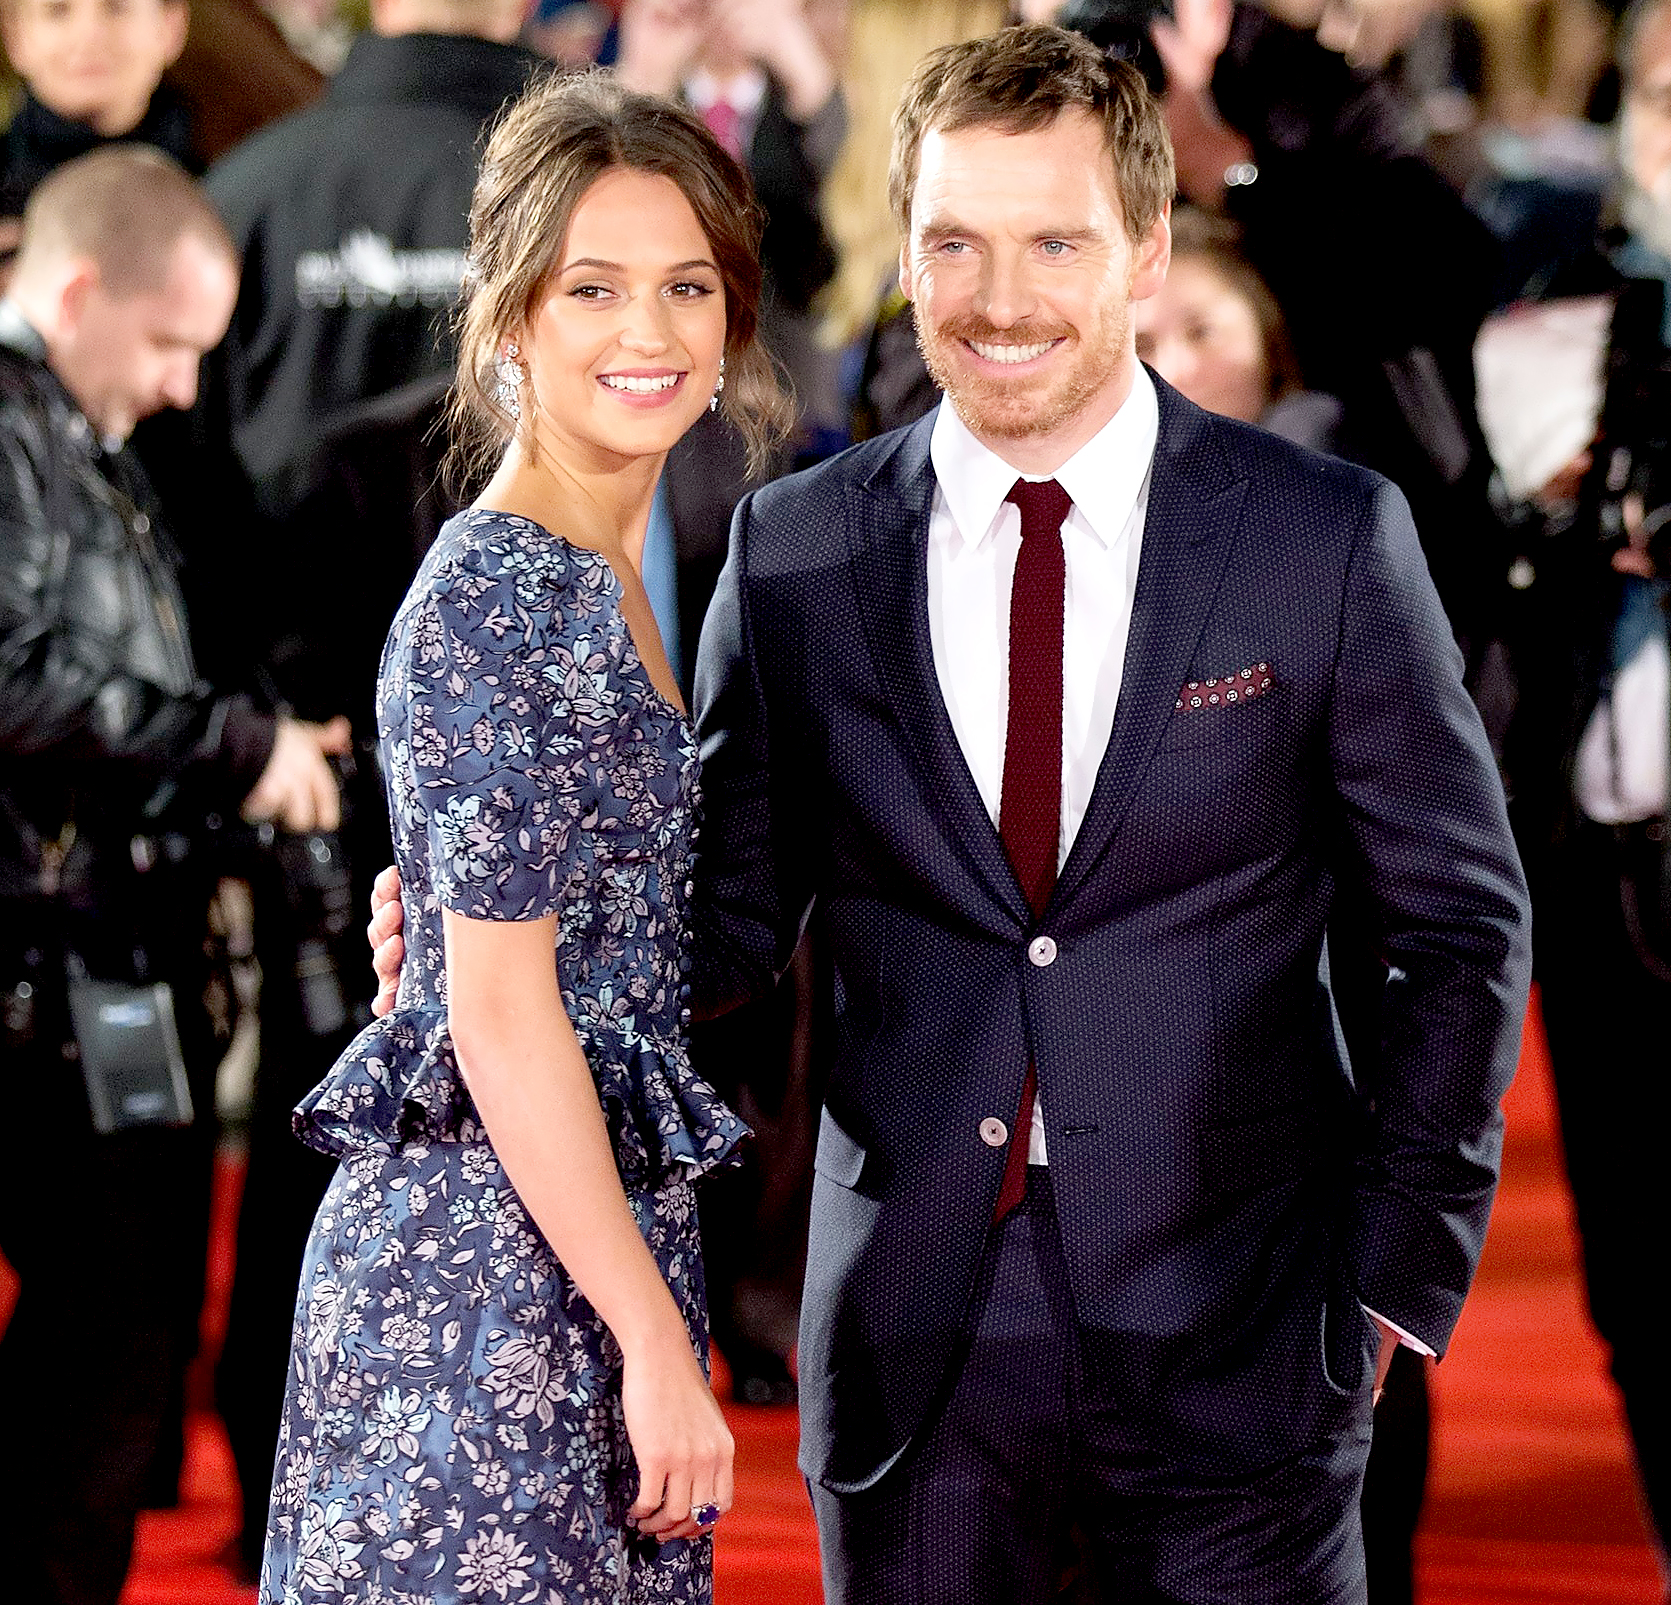 Alicia Vikander: 'I'm More Happy and Content' Since Marrying Michael Fassbender